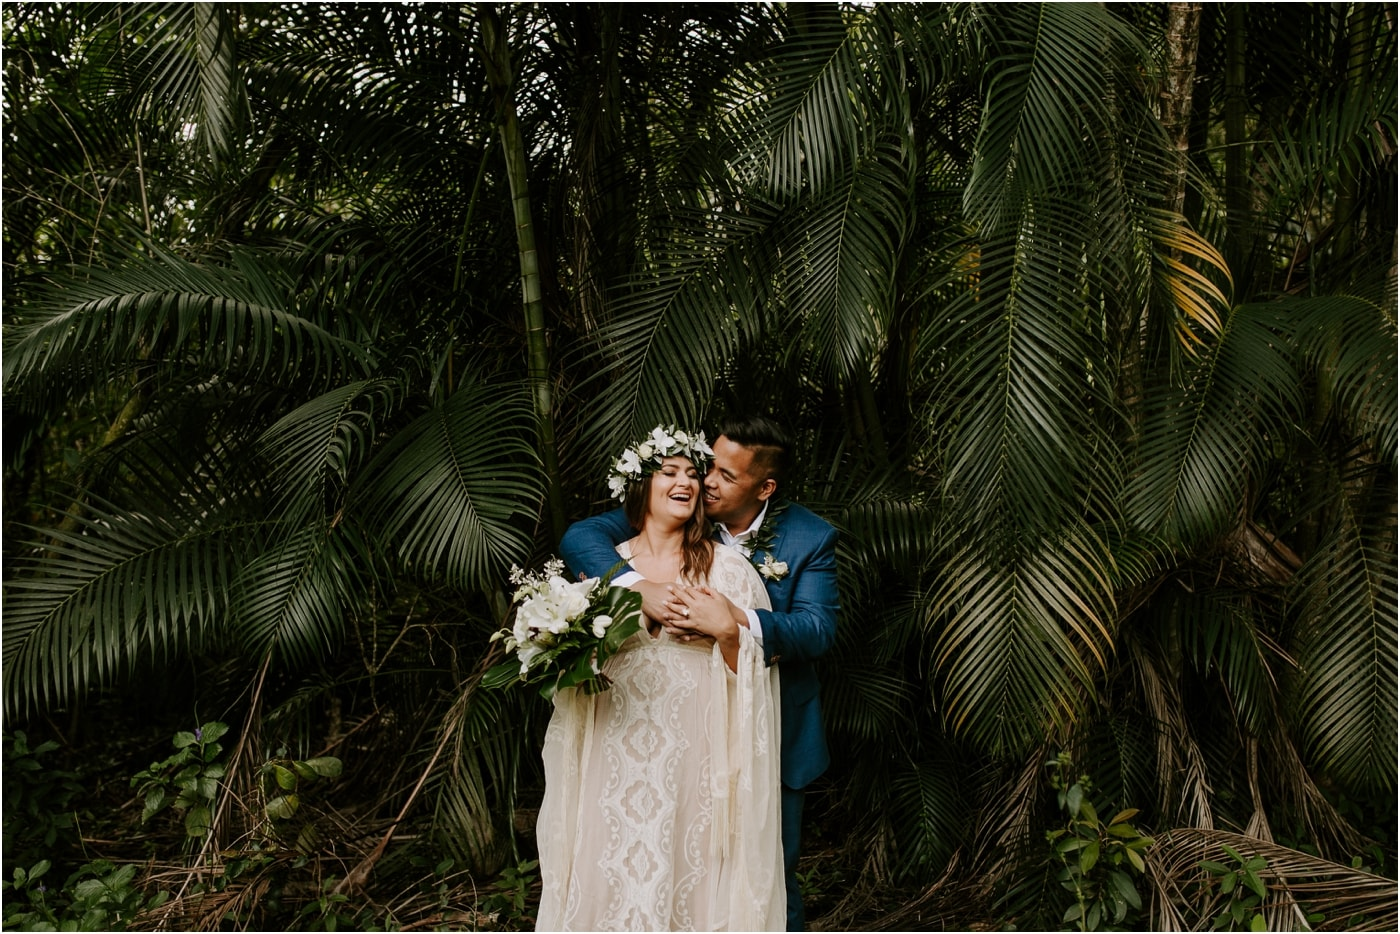 Intimate elopement in the mountains of Oahu